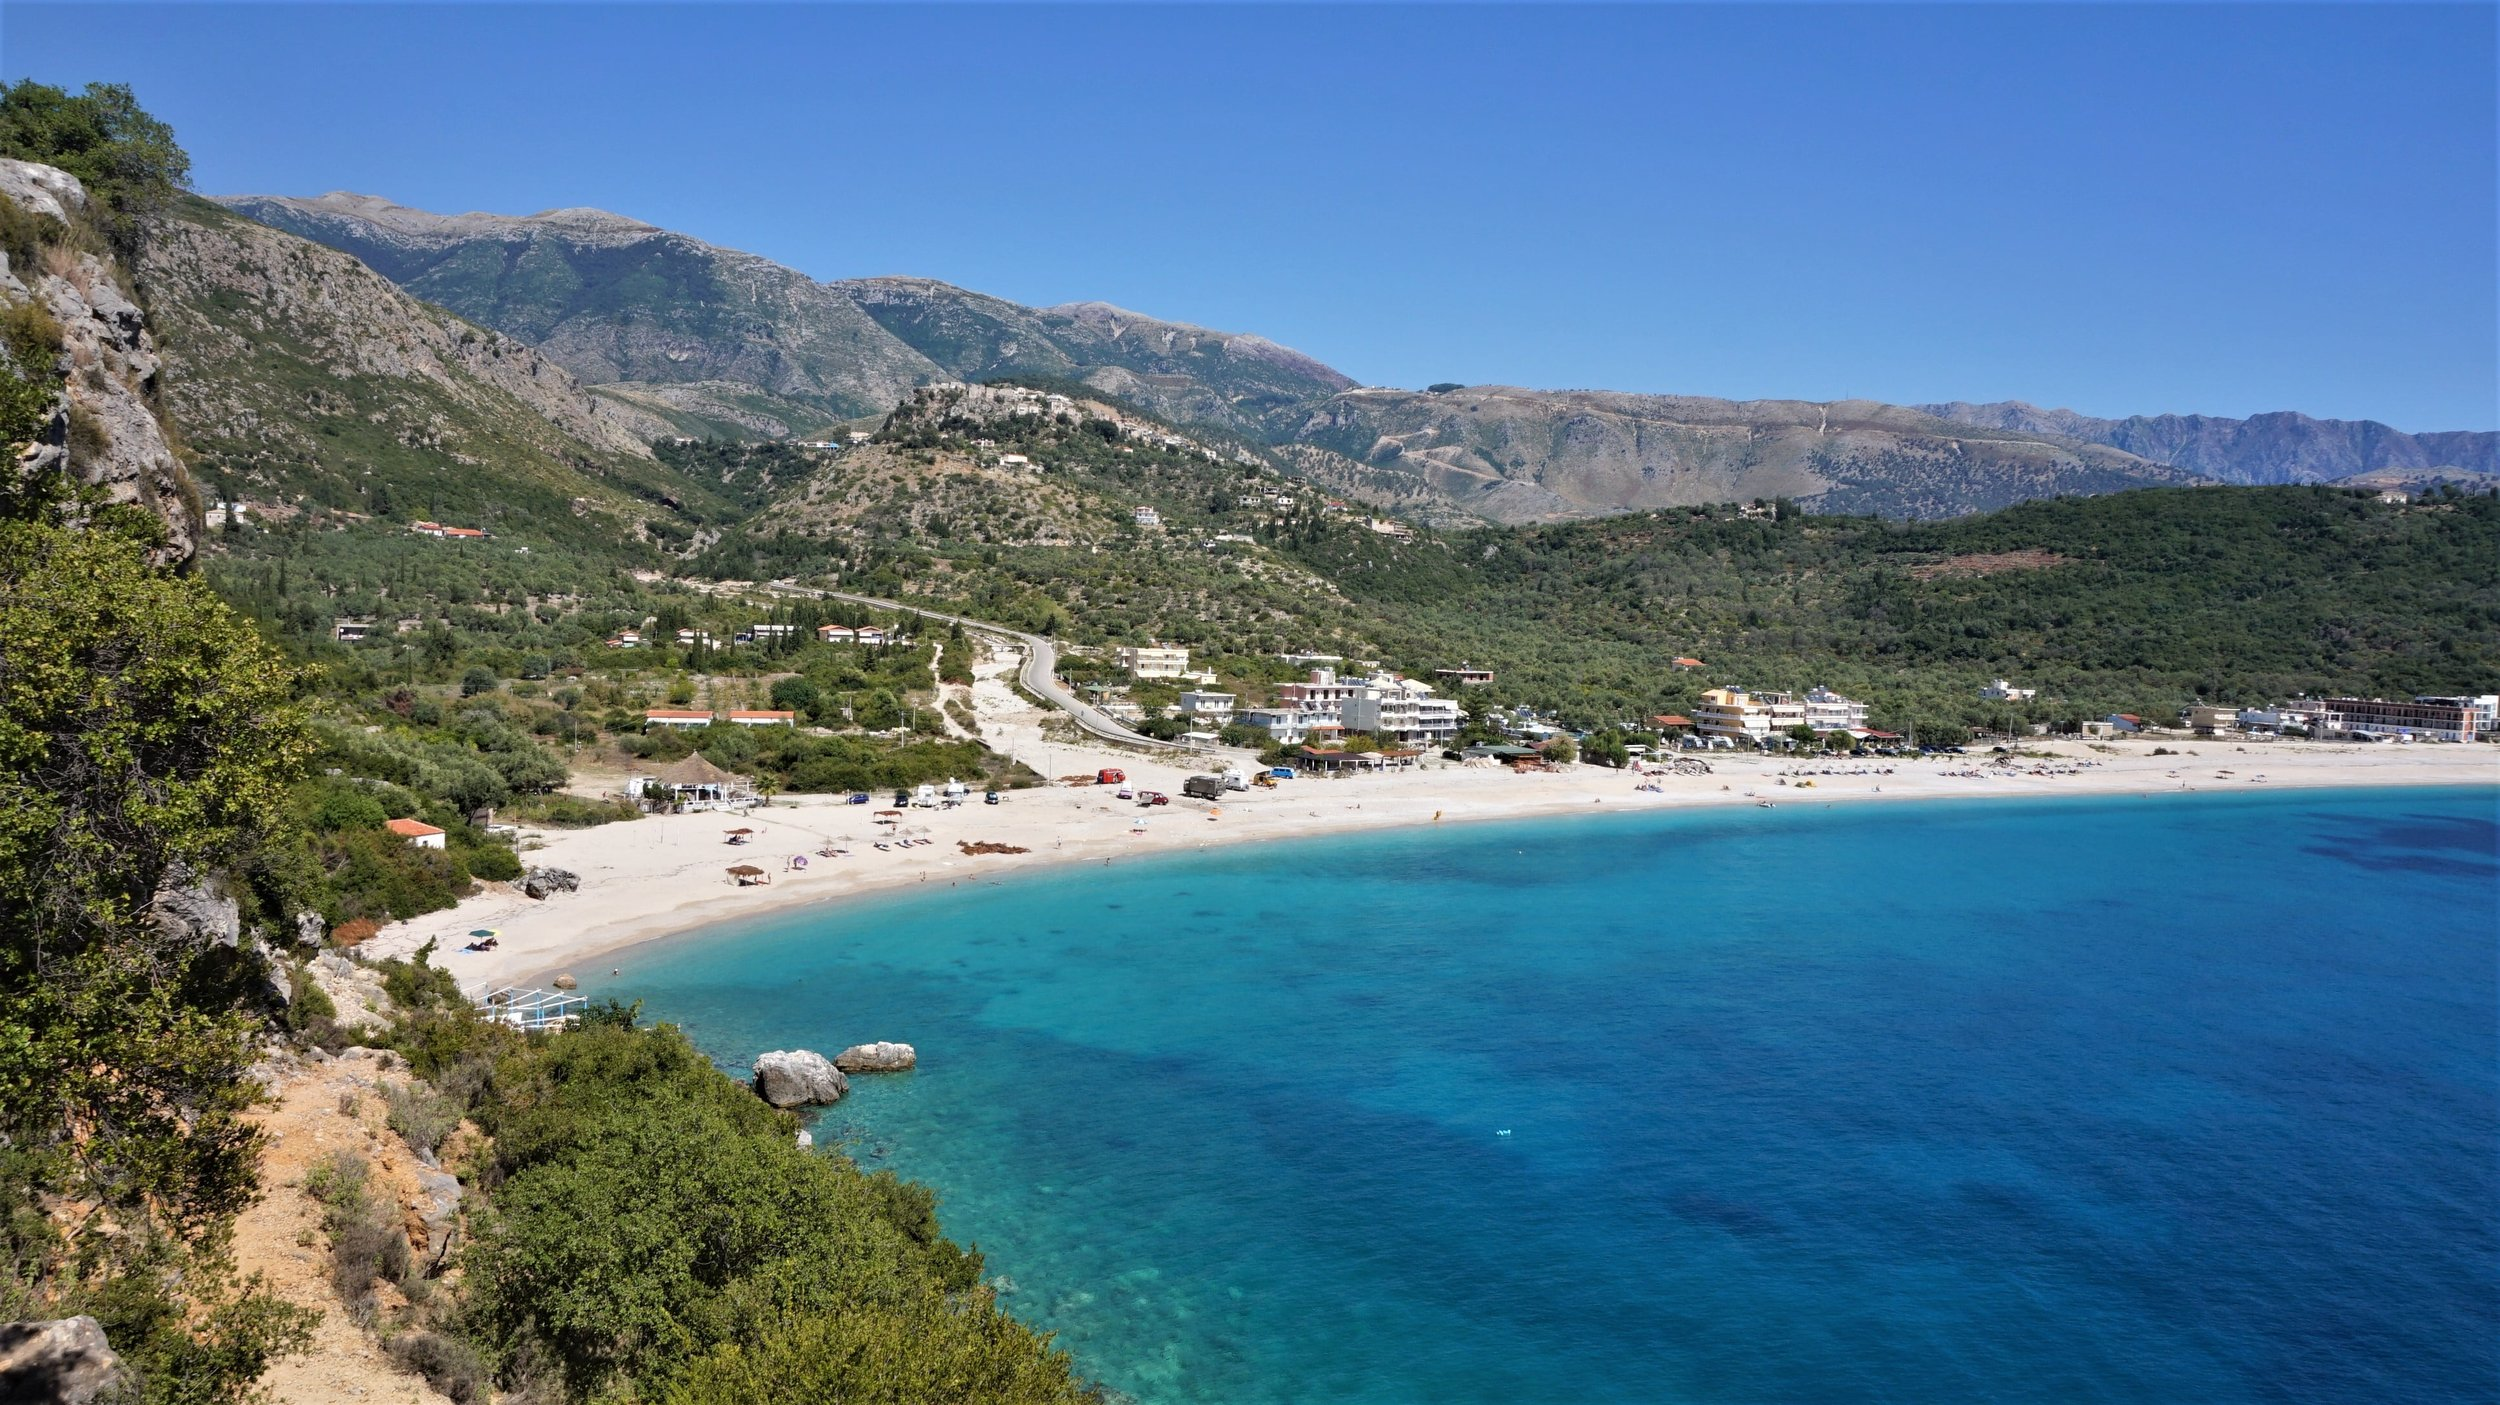 The Albanian rivera is the best spot for wild camping albania.